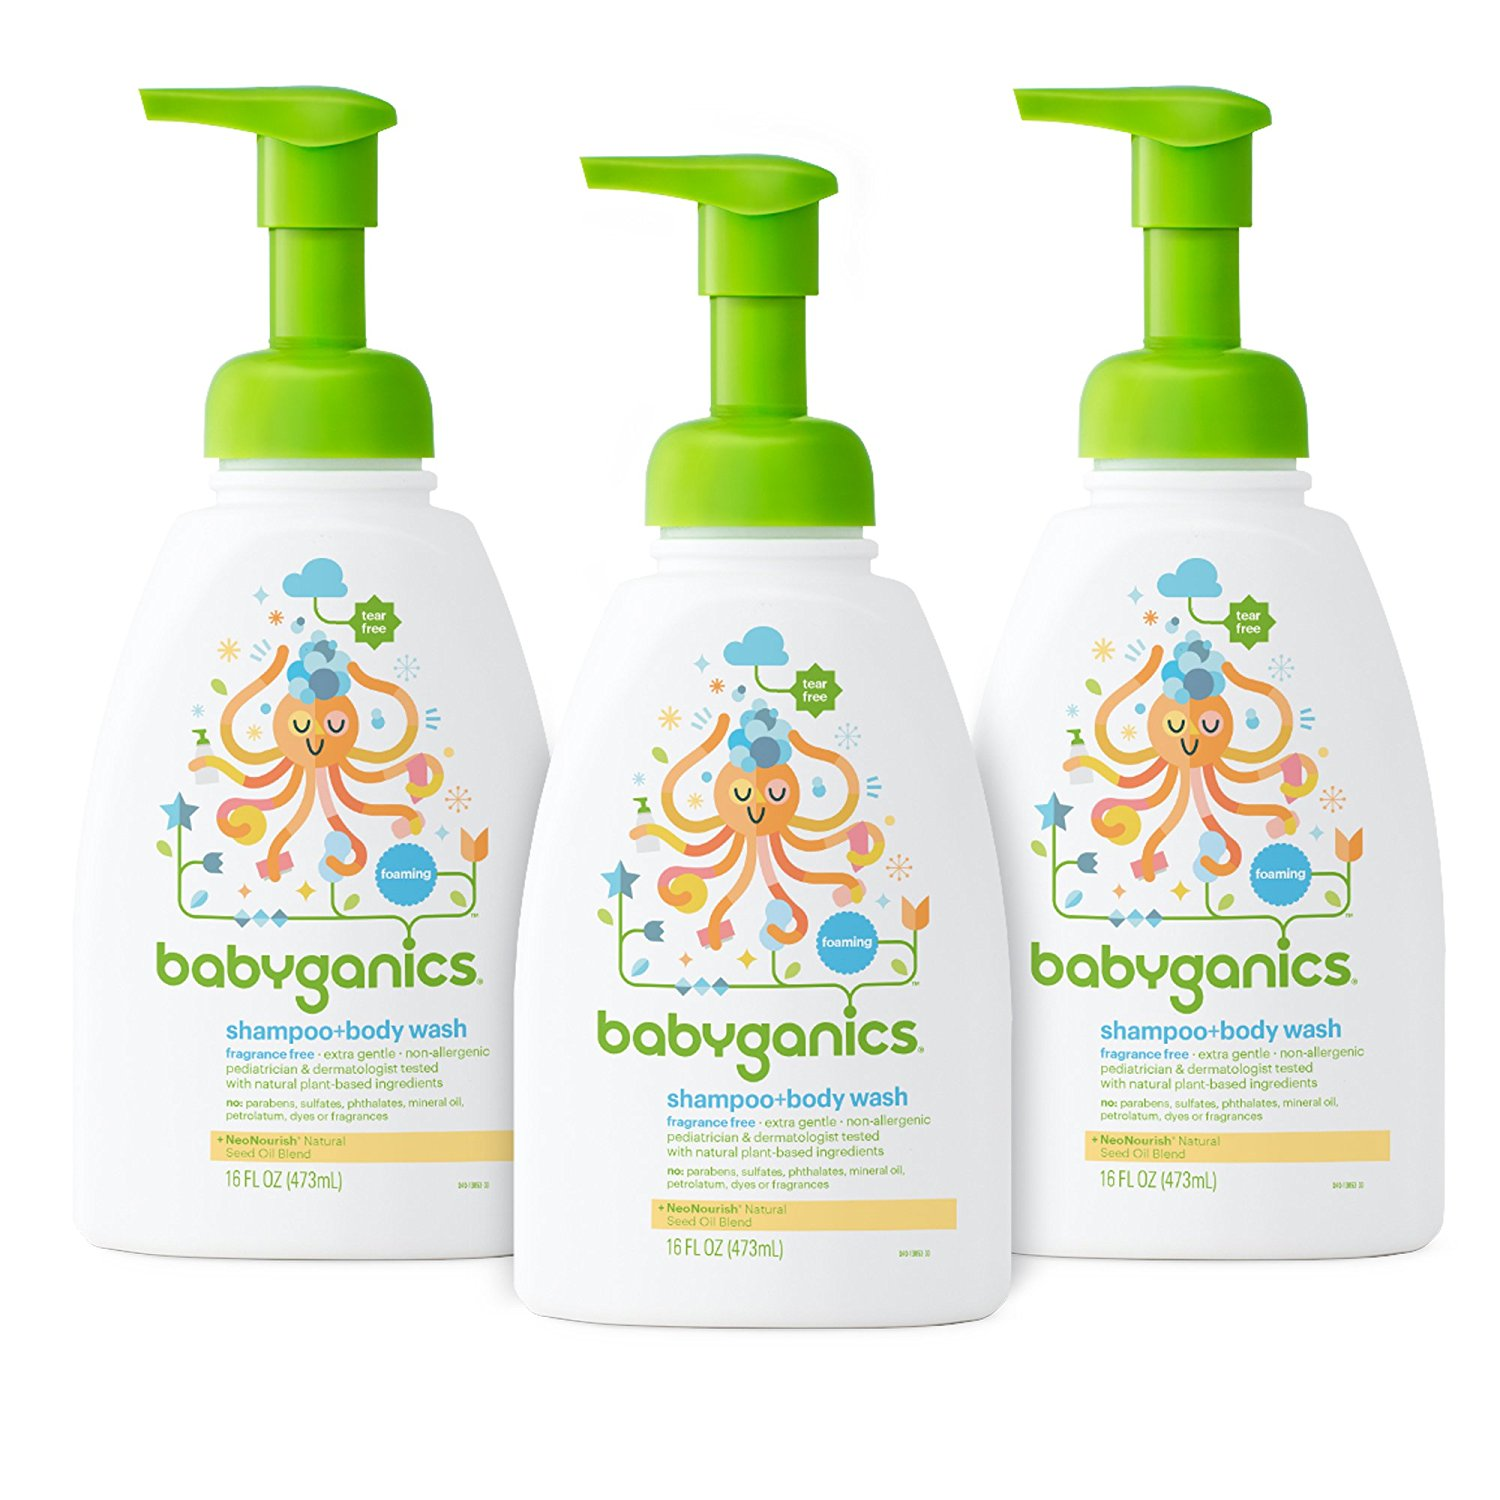 Babyganics Baby Shampoo and Body Wash, Fragrance Free, 3 Pack by